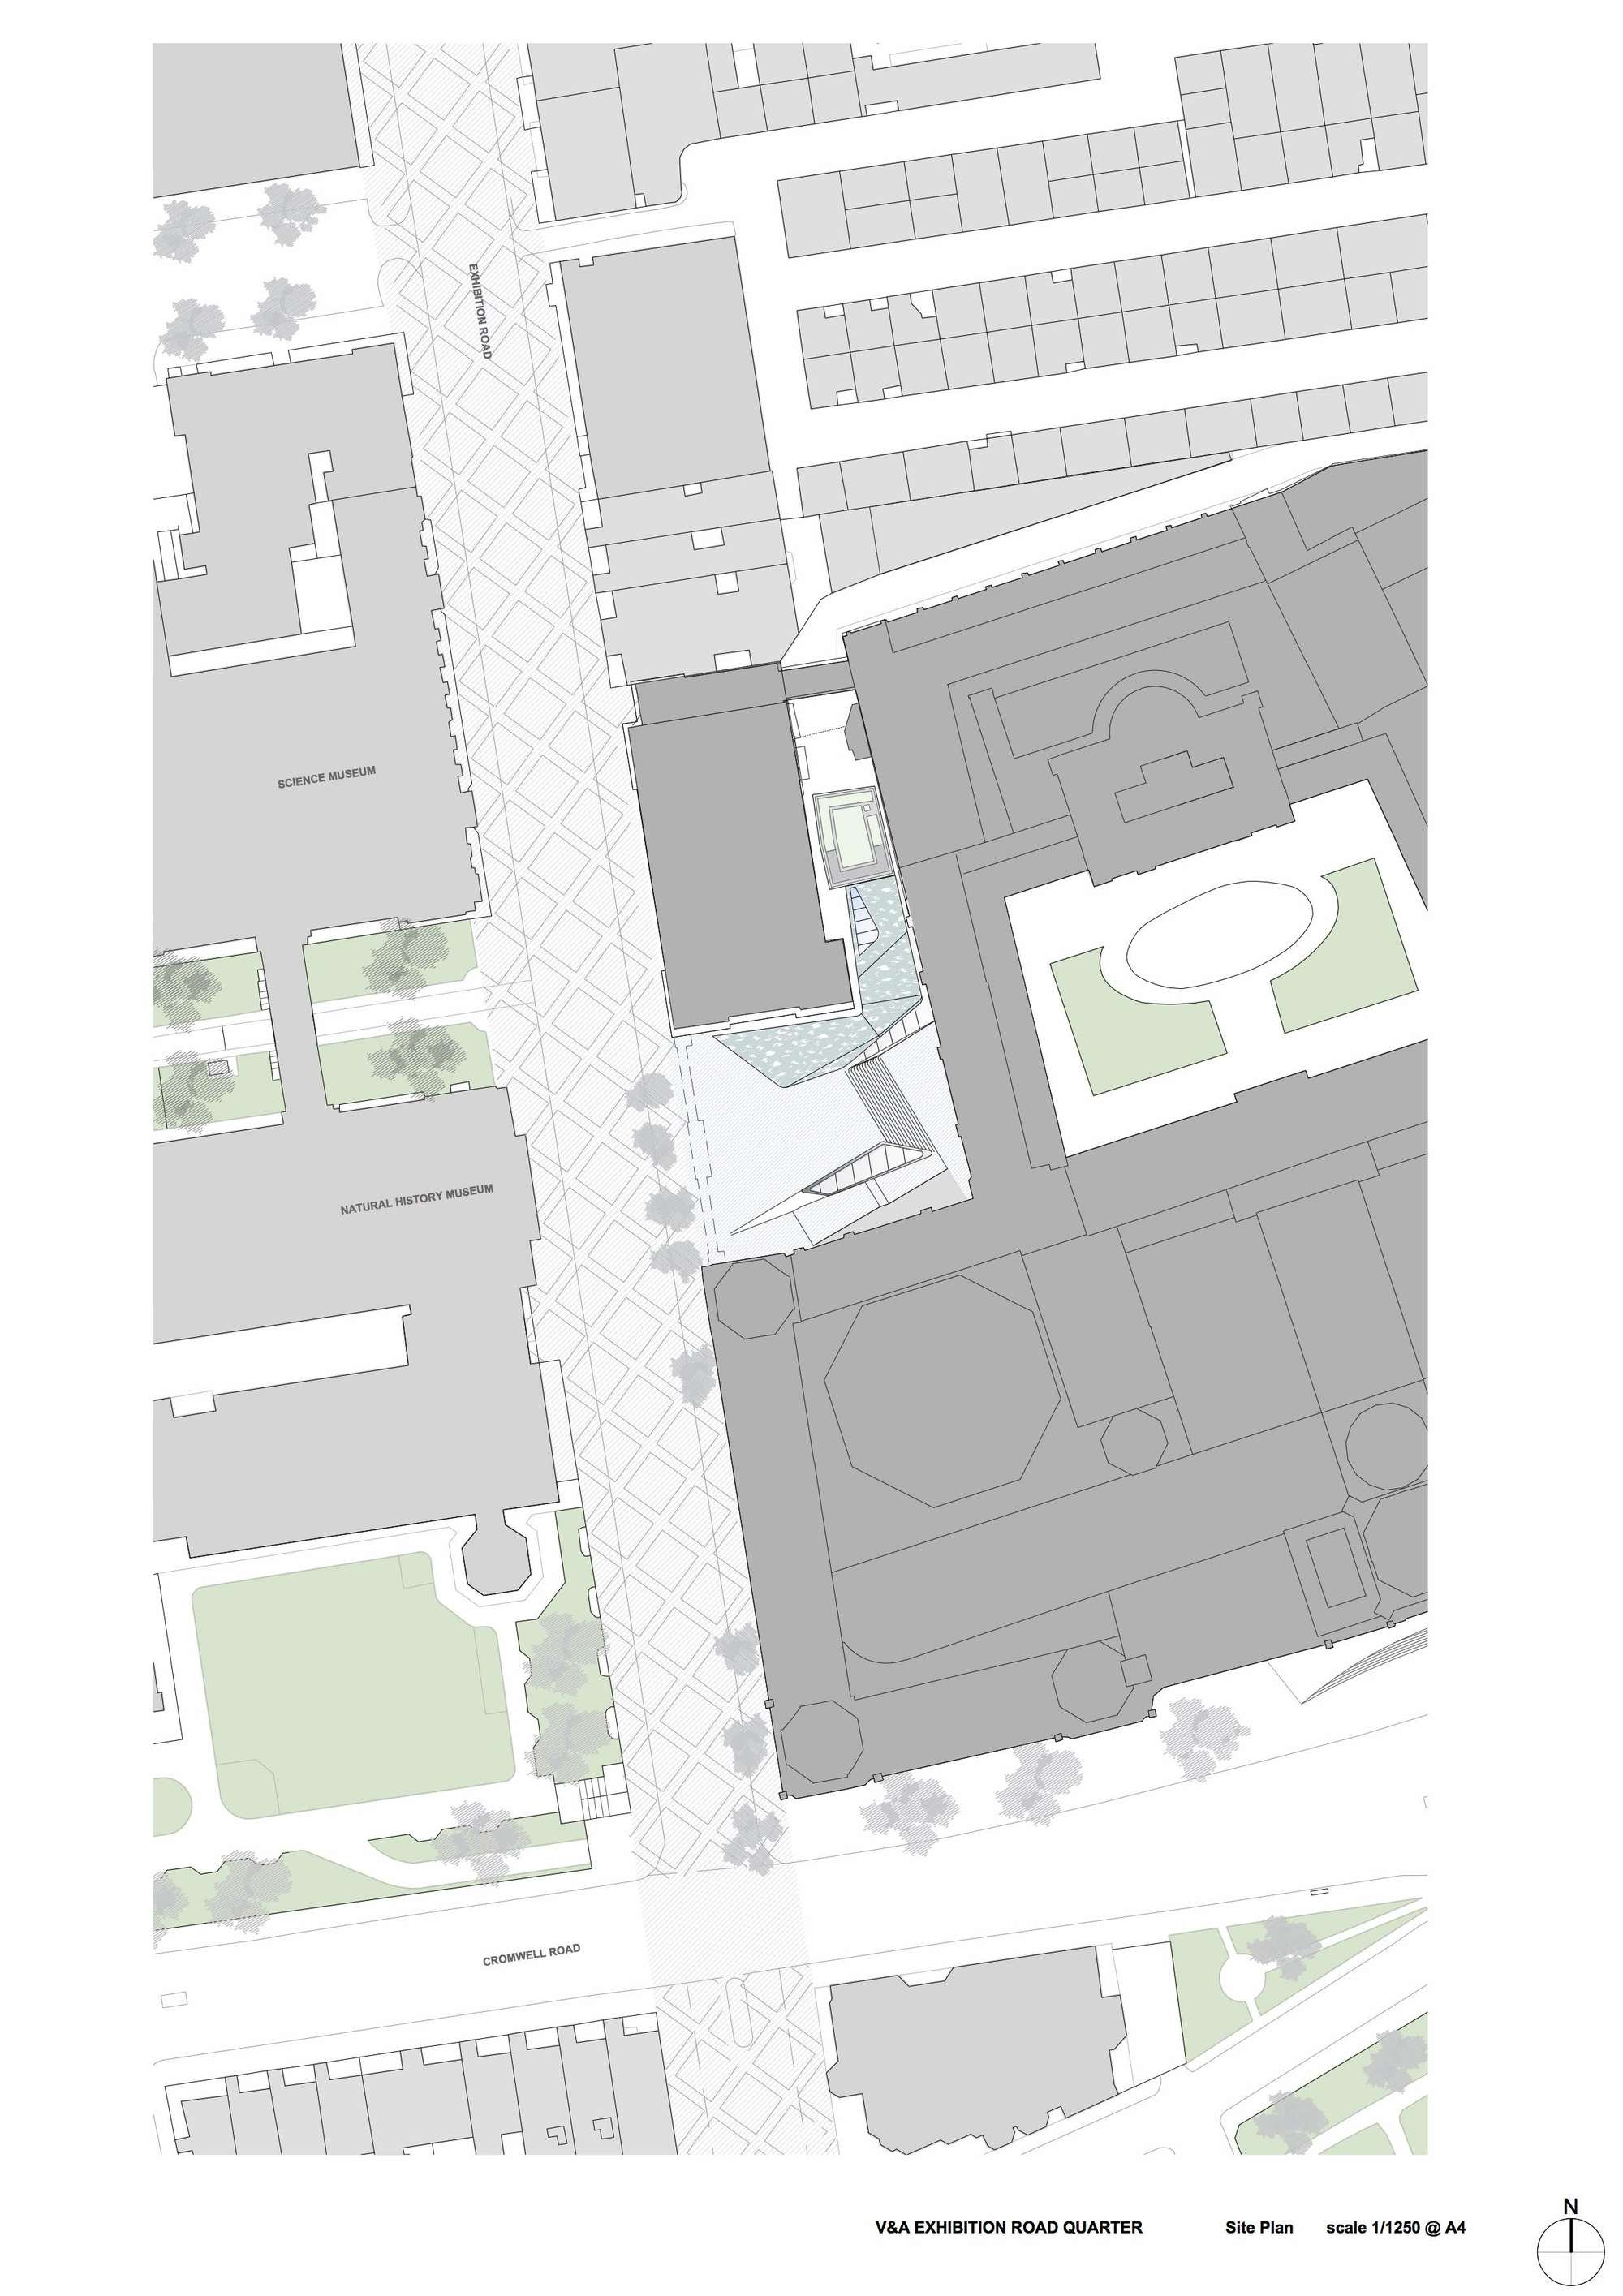 m1 _V_A_Exhibition_Road_Quarter_Site_Plan_1_1250_A4.jpg